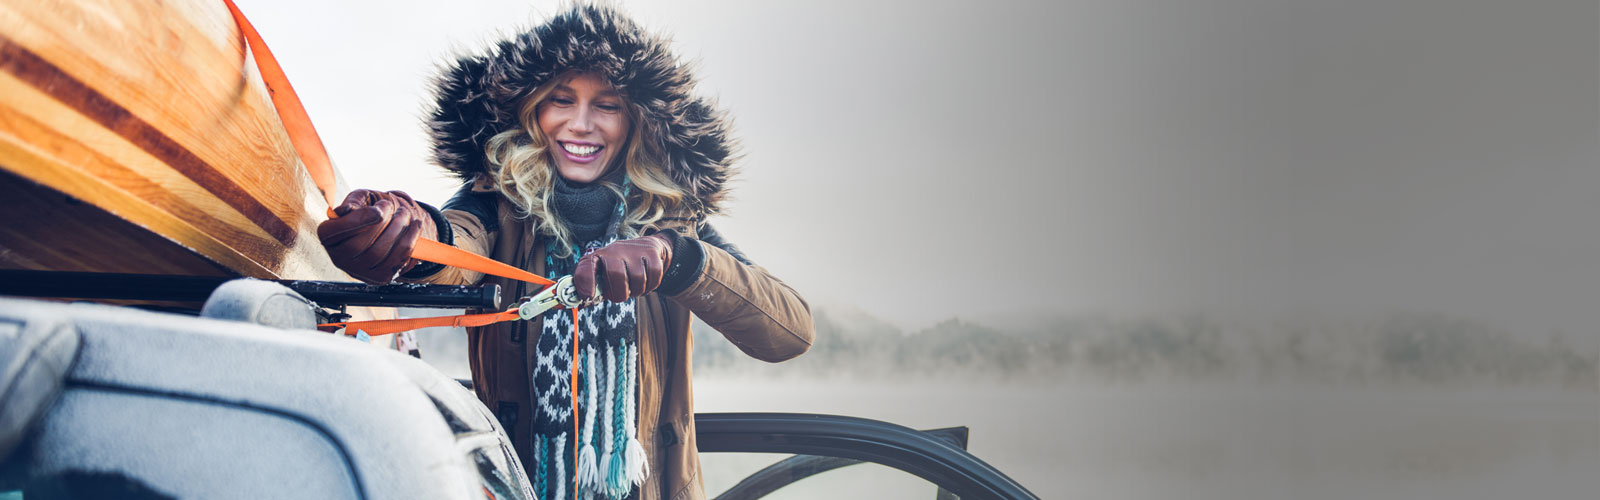 woman in a parka cinching something to the top of her vehicle